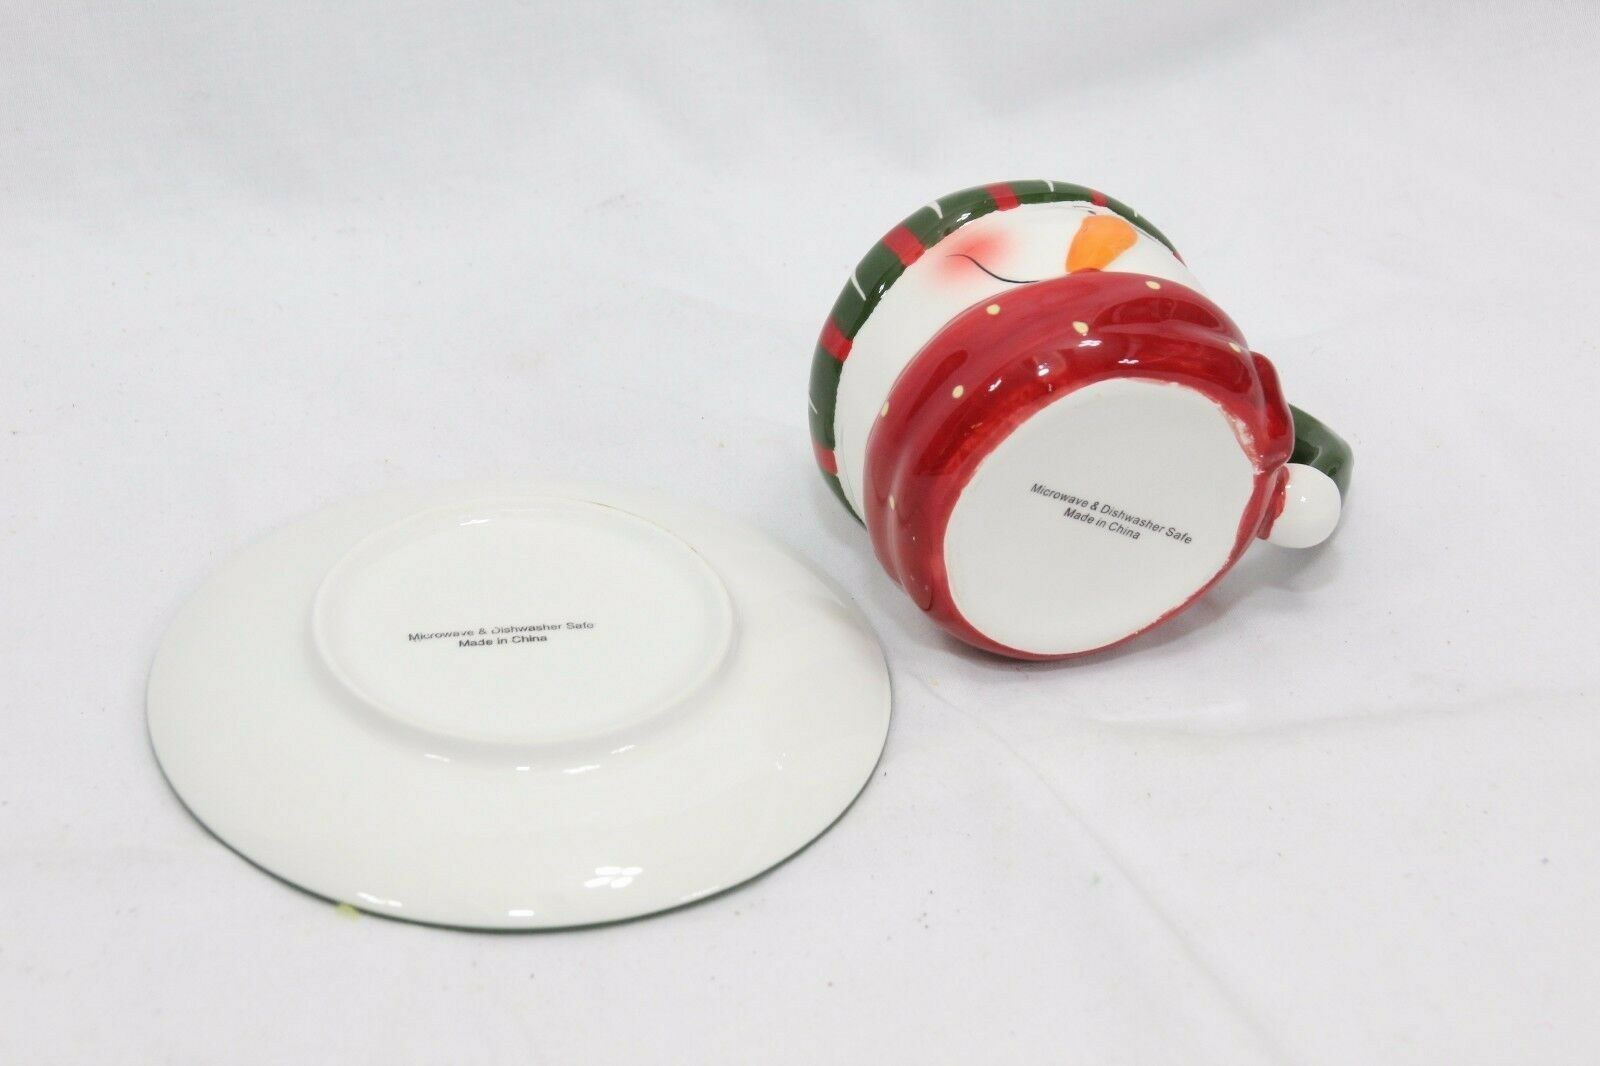 Snowman Xmas 4 Cups and 4 Saucers image 10